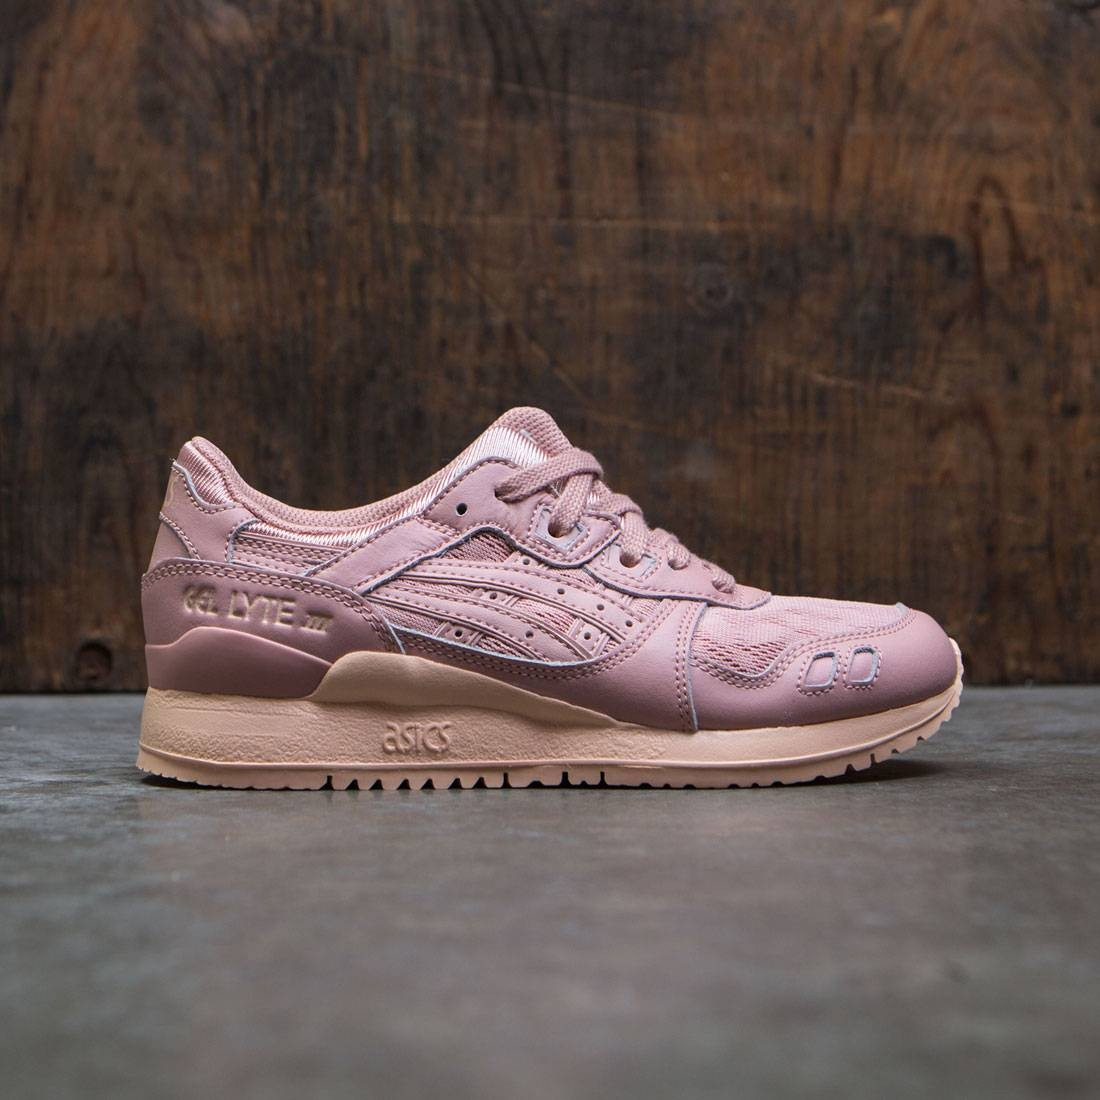 another chance 100% authentic hot sale online Asics Tiger Women Gel-Lyte III (pink / peach beige)